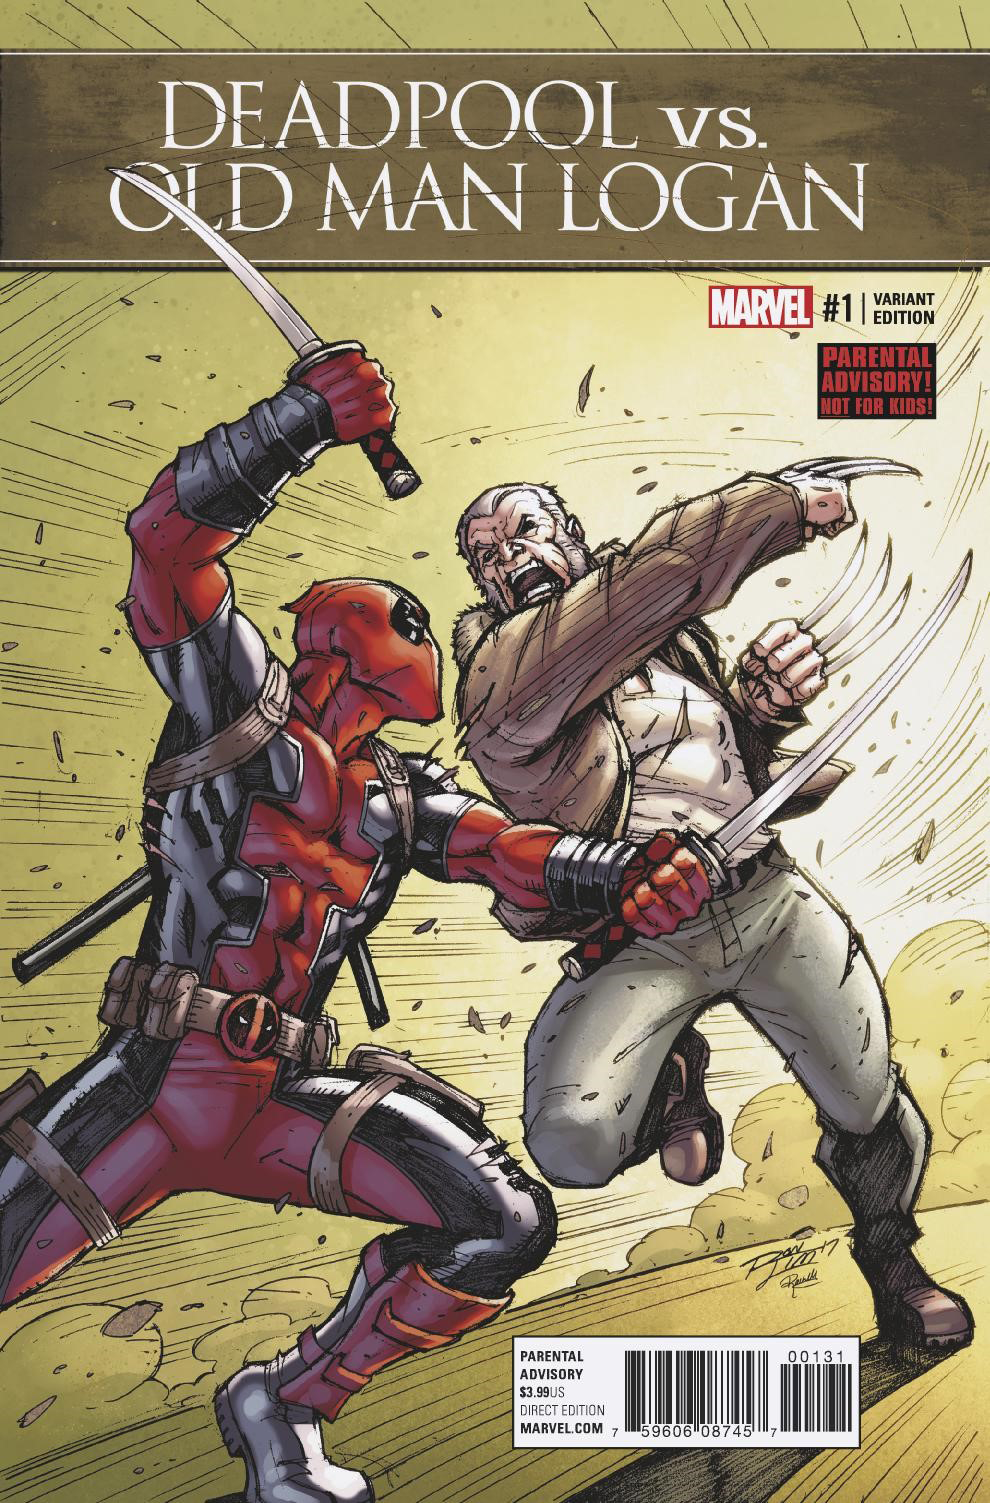 aug170927 deadpool vs old man logan 1 of 5 lim var previews world